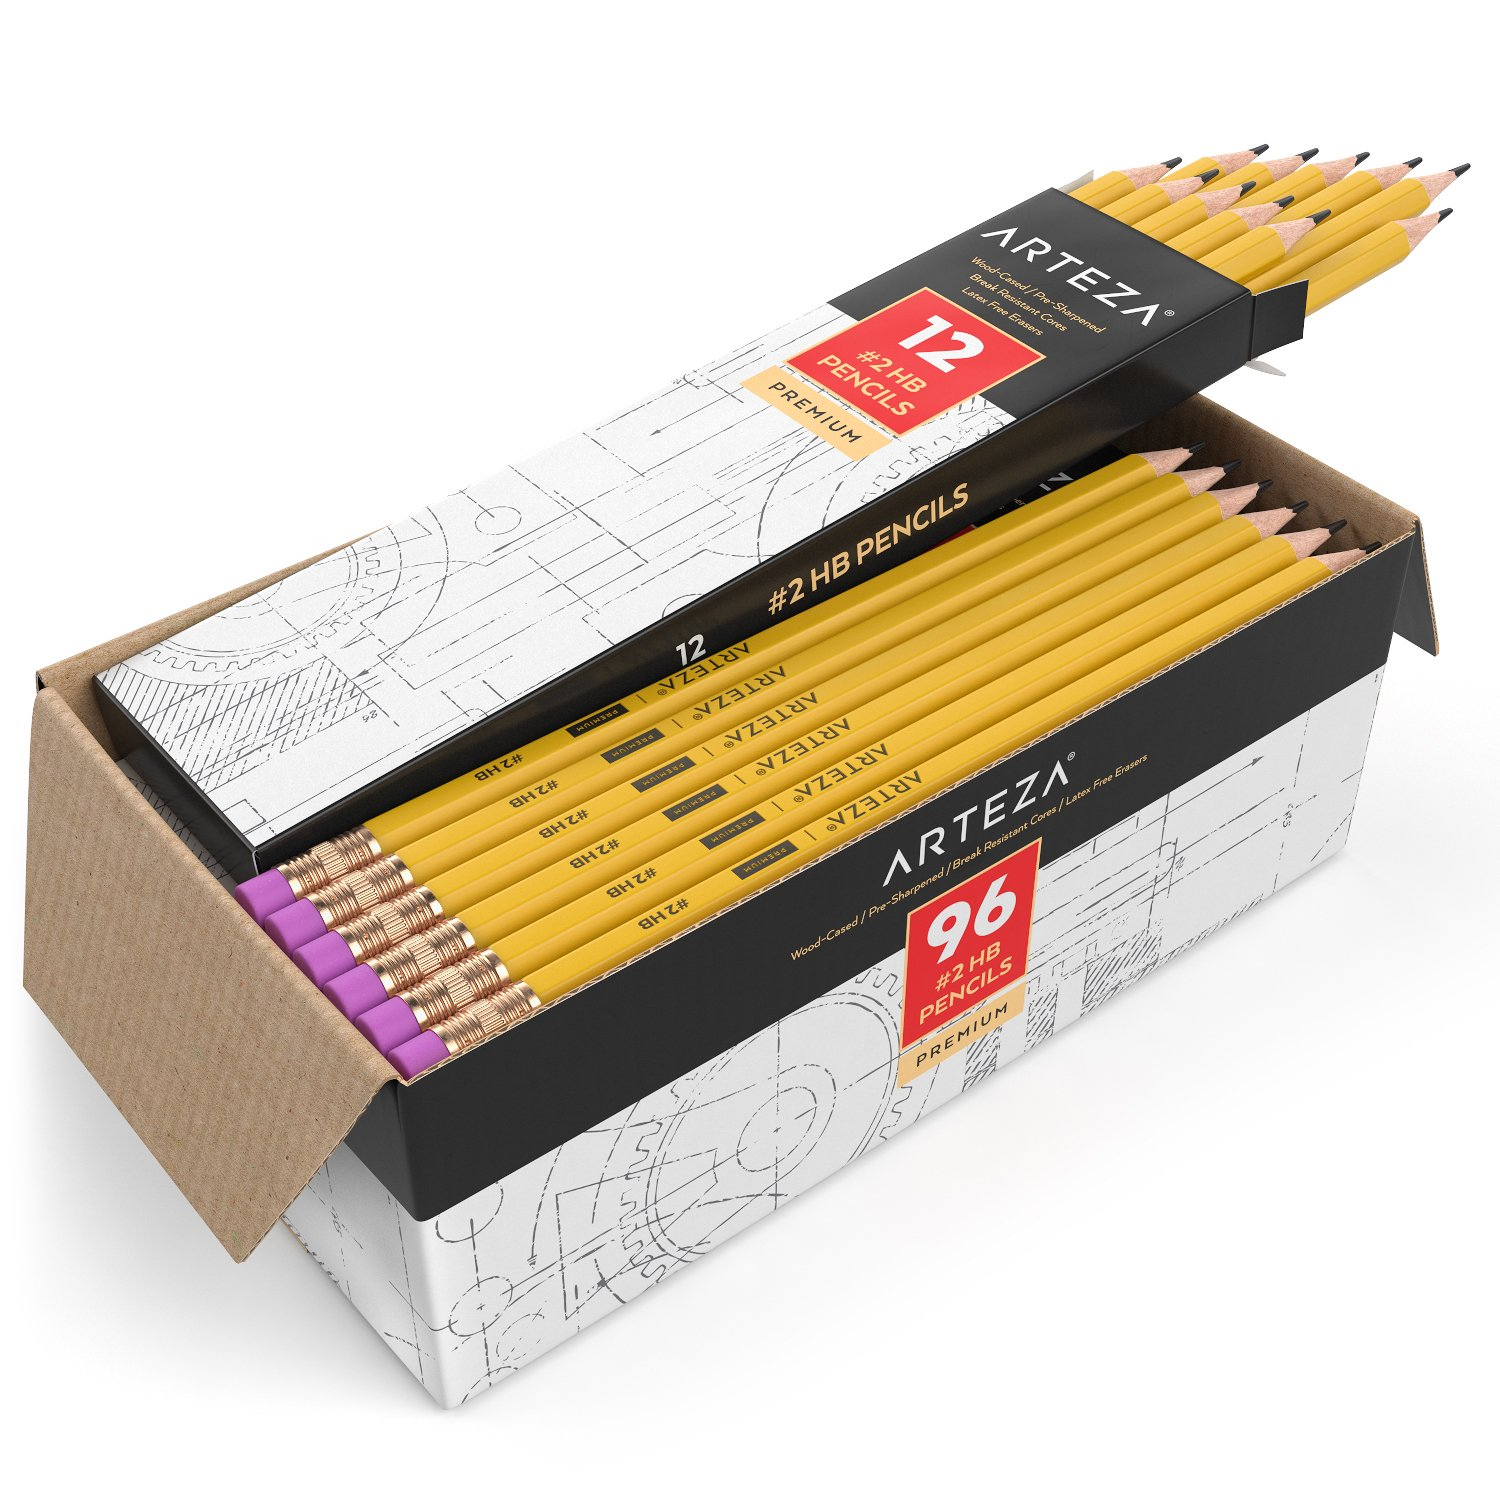 ARTEZA #2 HB Wood Cased Graphite Pencils, Pack of 96, Bulk, Pre-Sharpened with Latex Free Erasers, Bulk pack, Smooth write for Exams, School, Office, Drawing and Sketching by ARTEZA